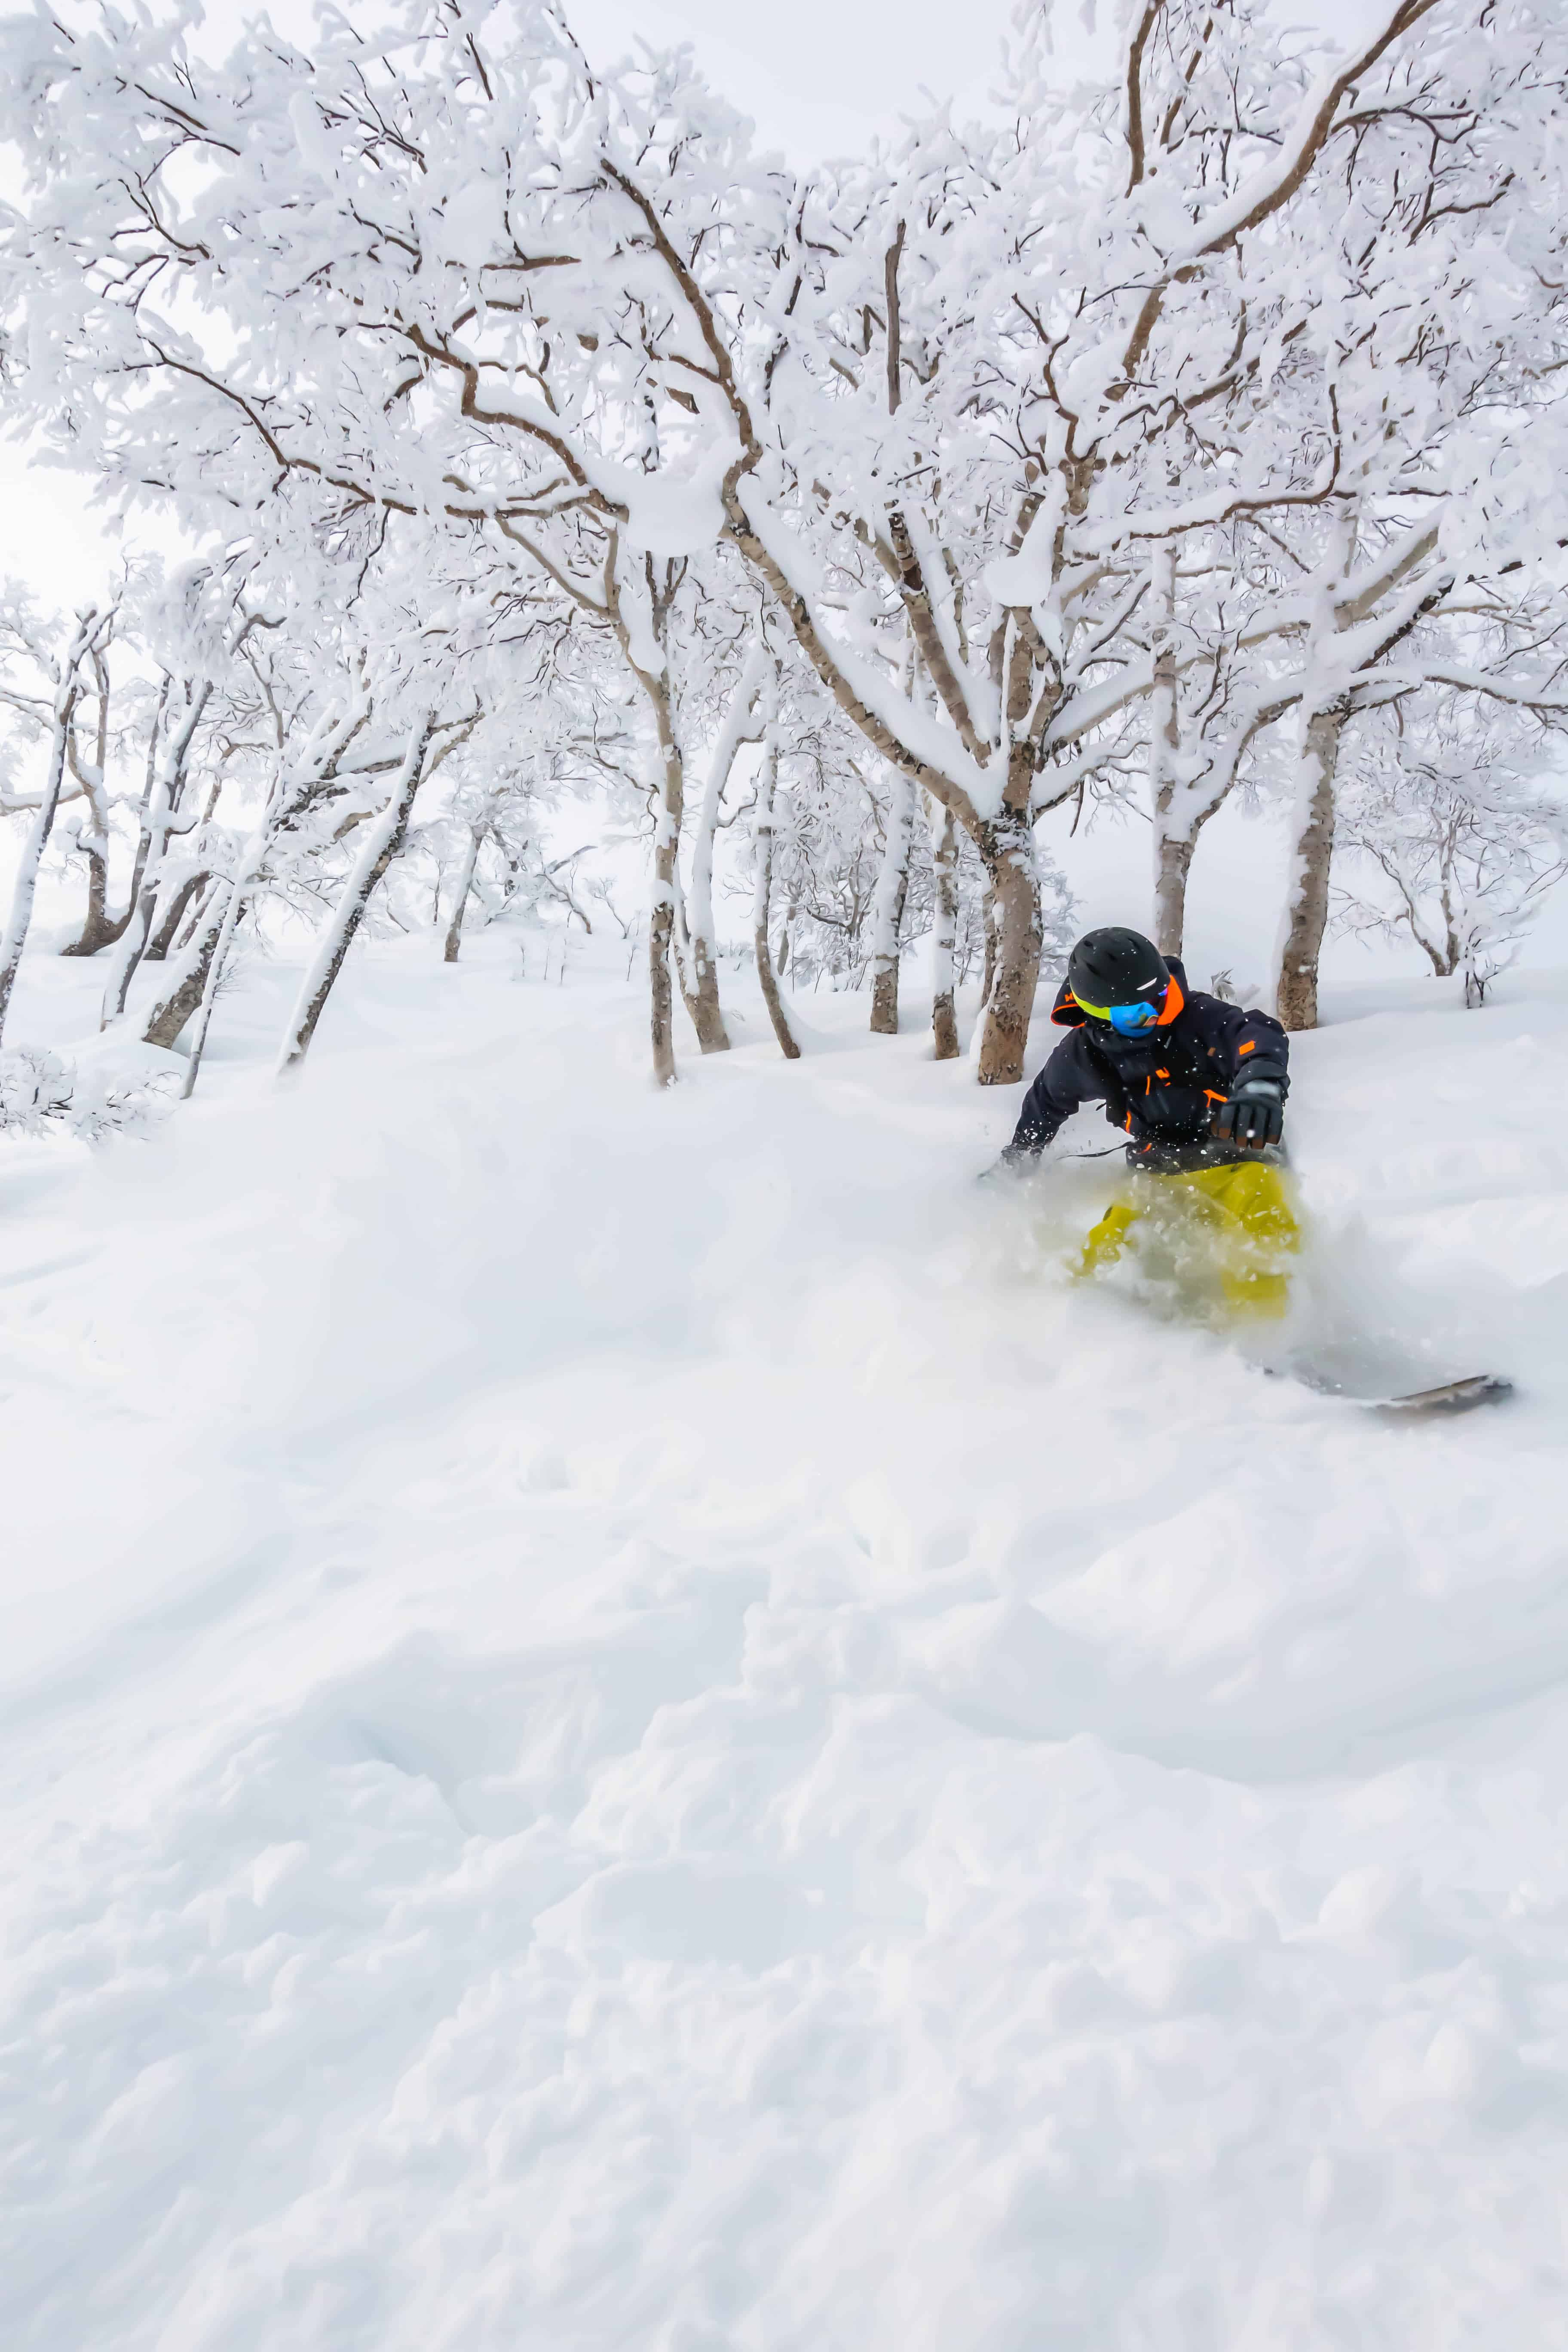 Cameron riding knee deep powder in the trees